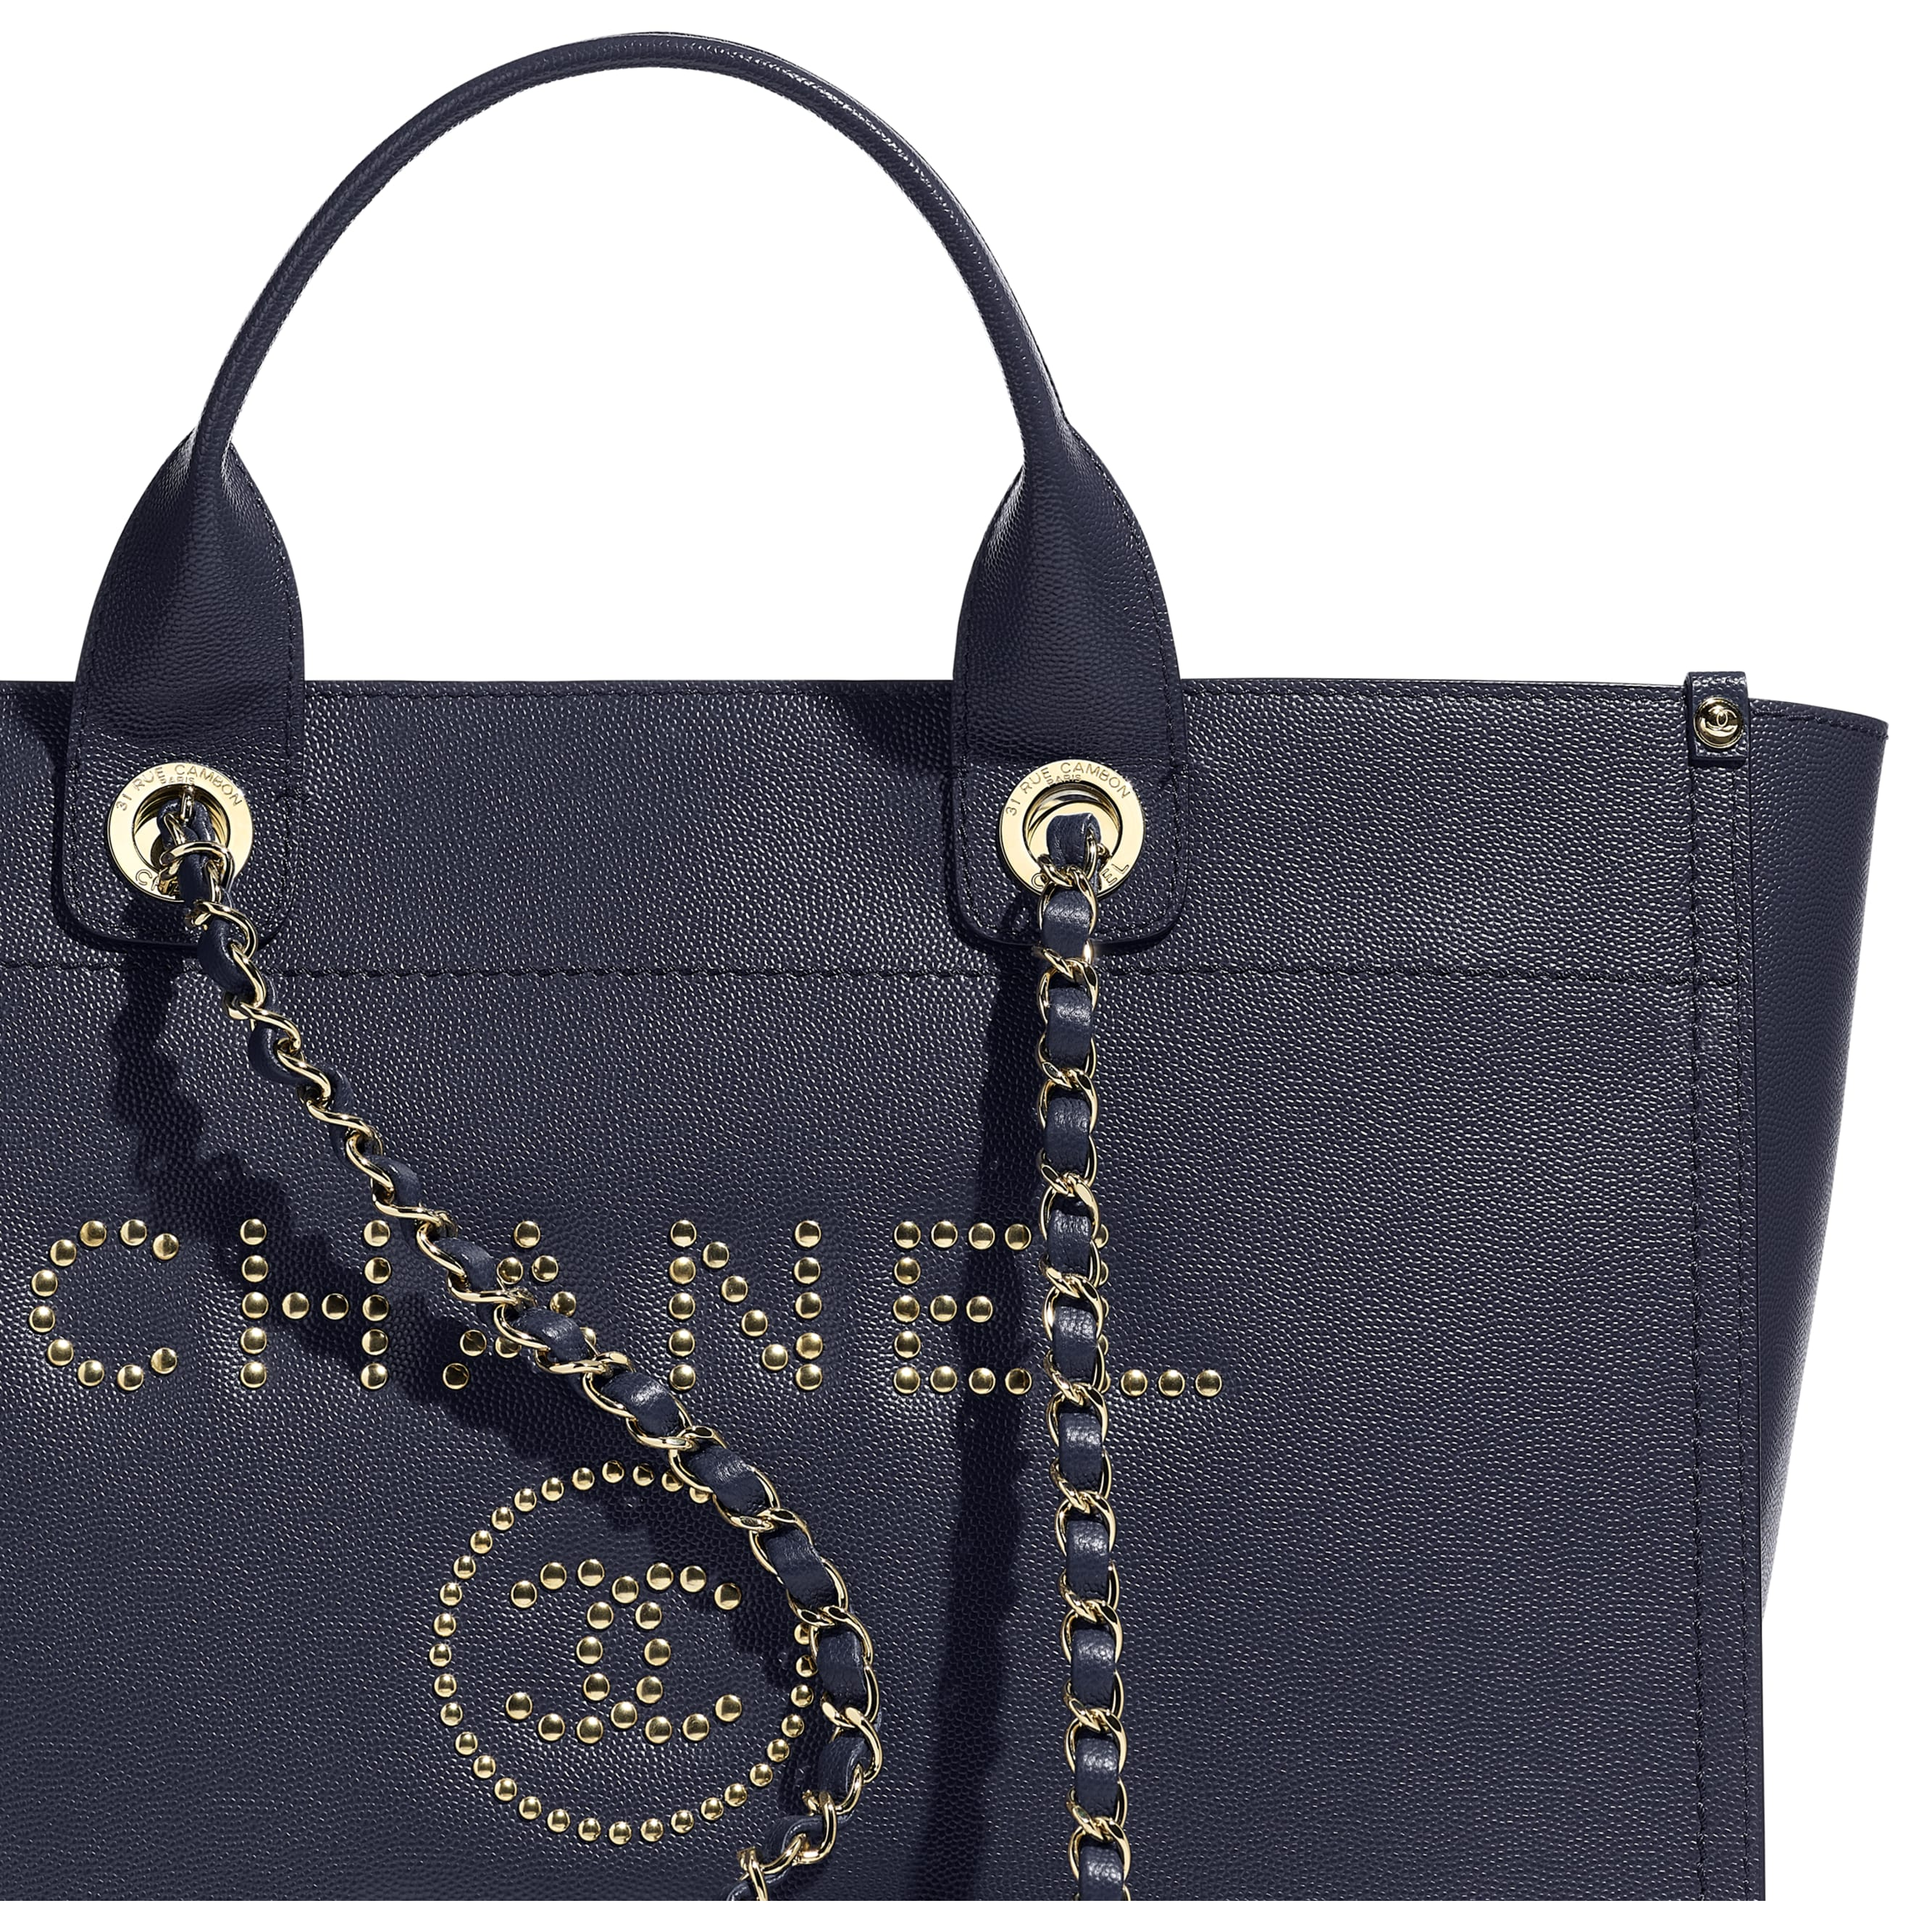 Large Shopping Bag - Navy Blue - Grained Calfskin & Gold-Tone Metal - CHANEL - Extra view - see standard sized version